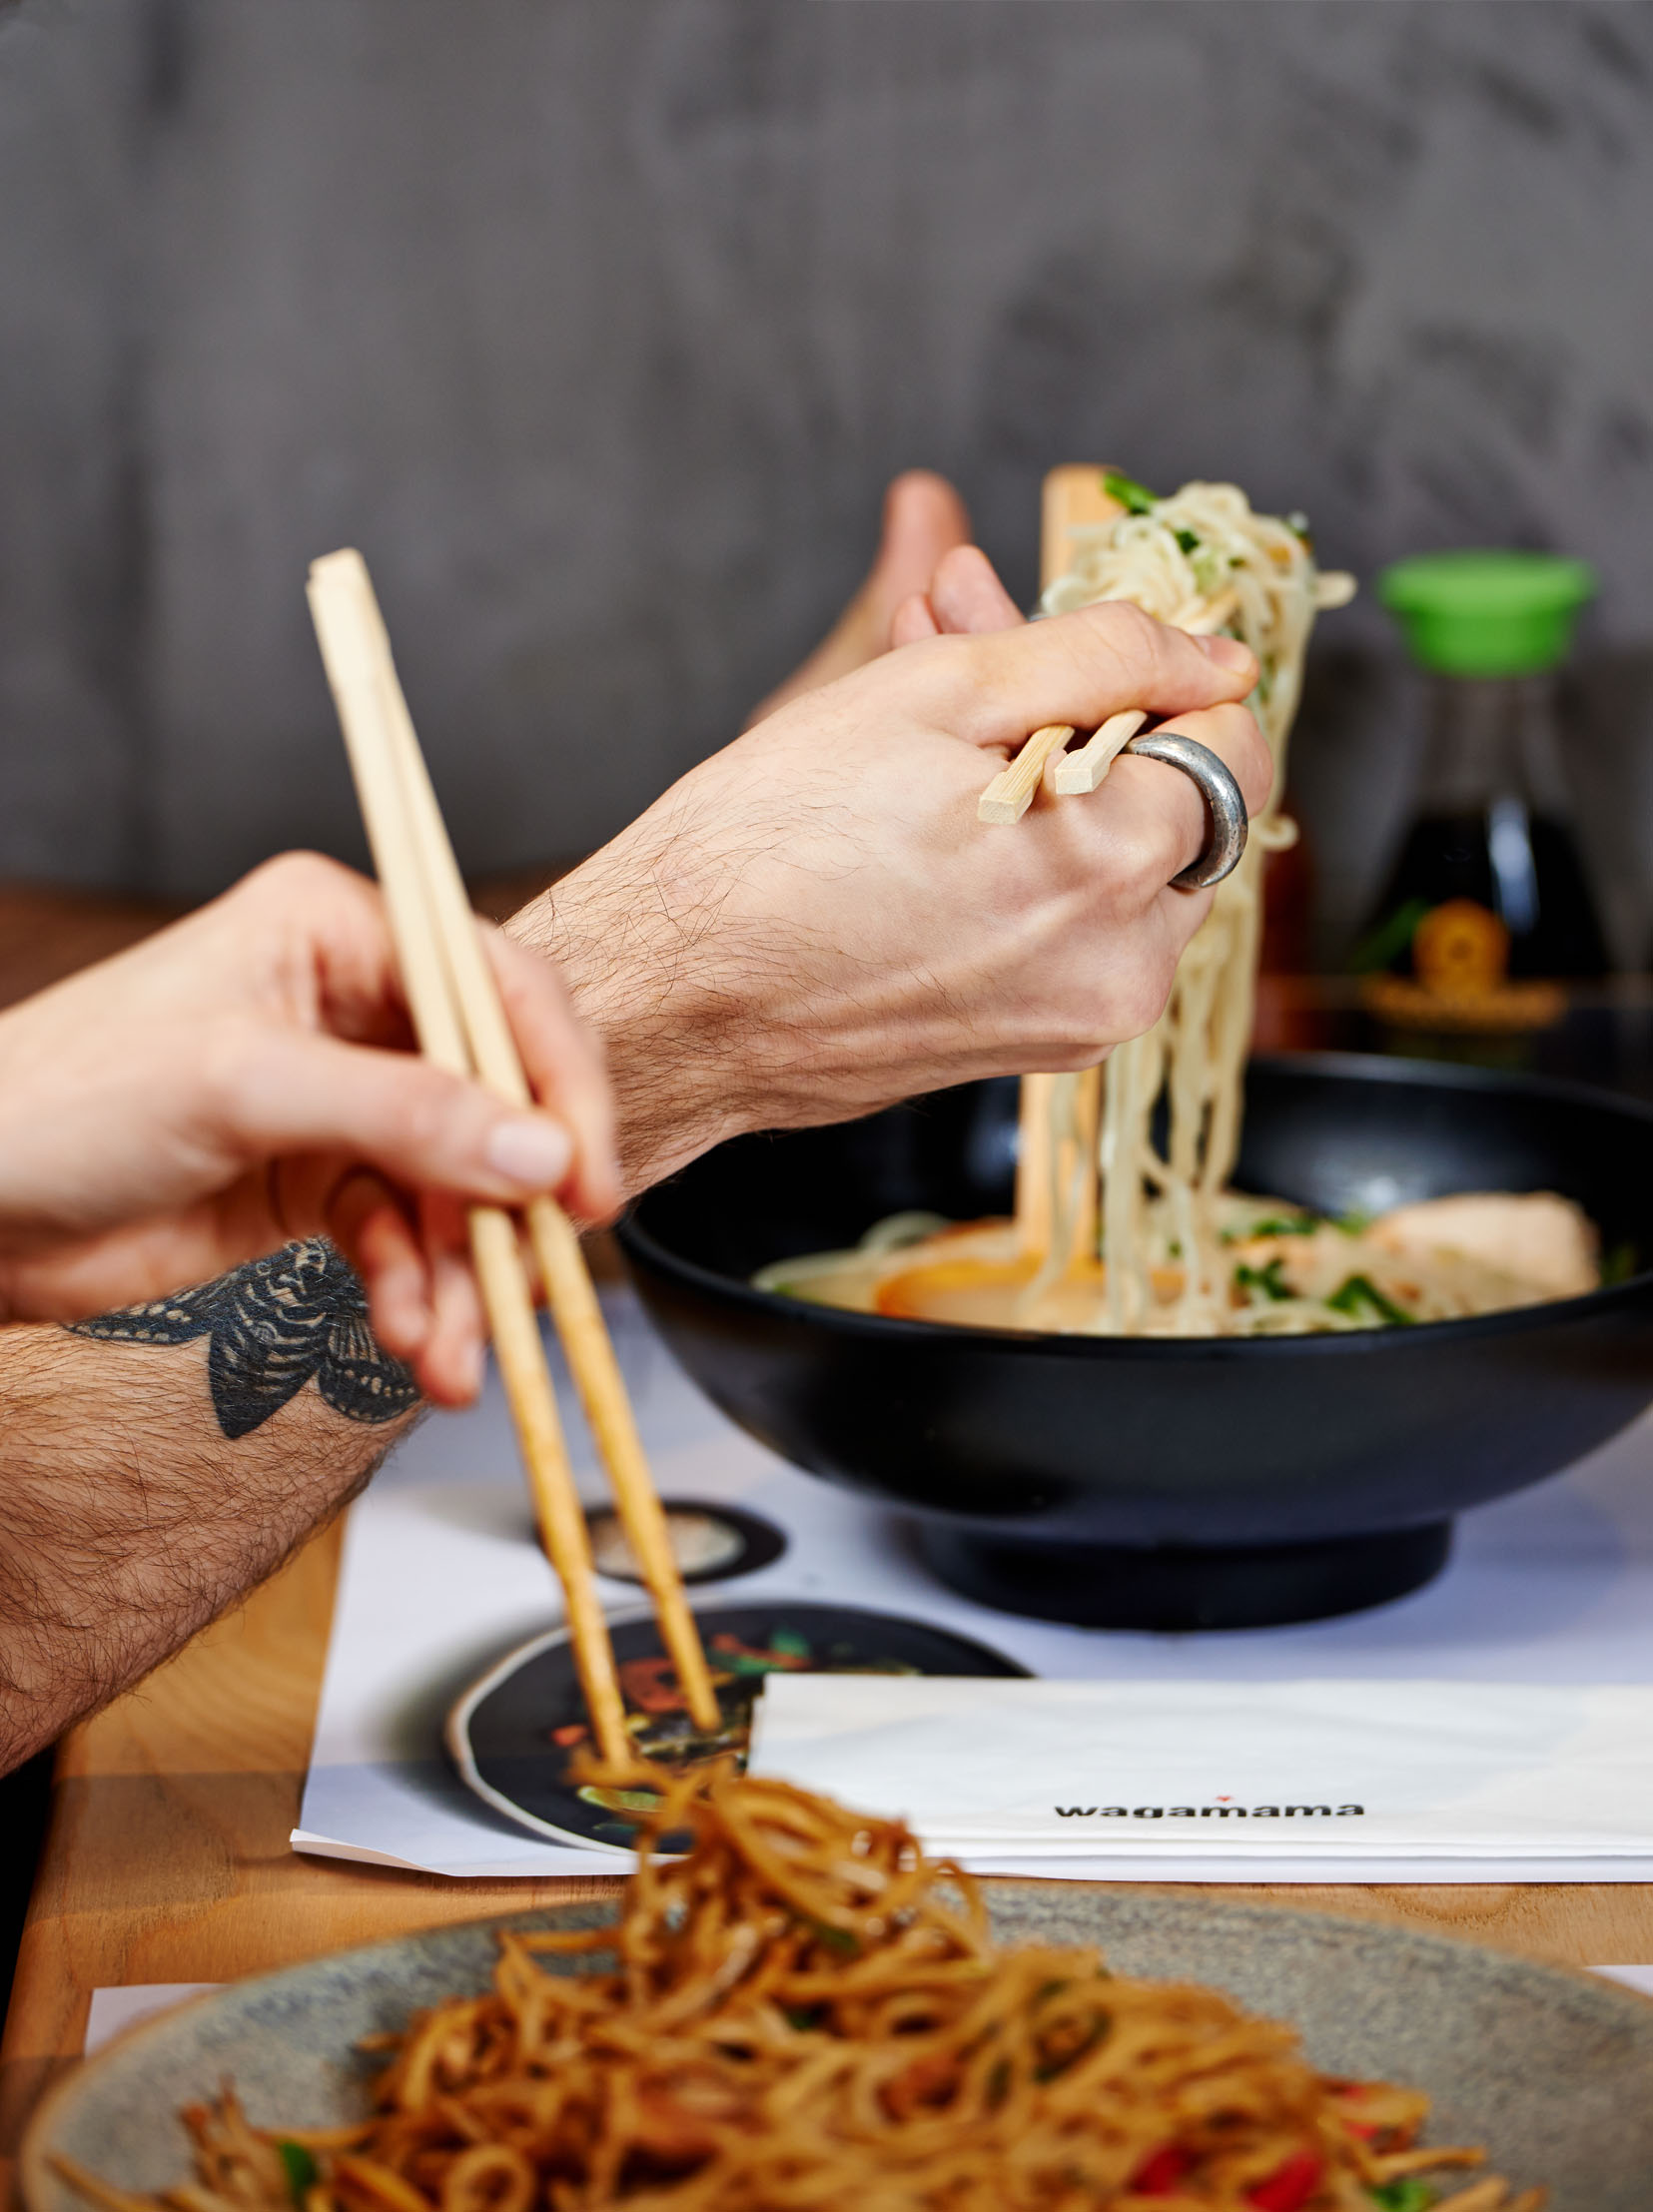 food photography for Wagamama restaurants